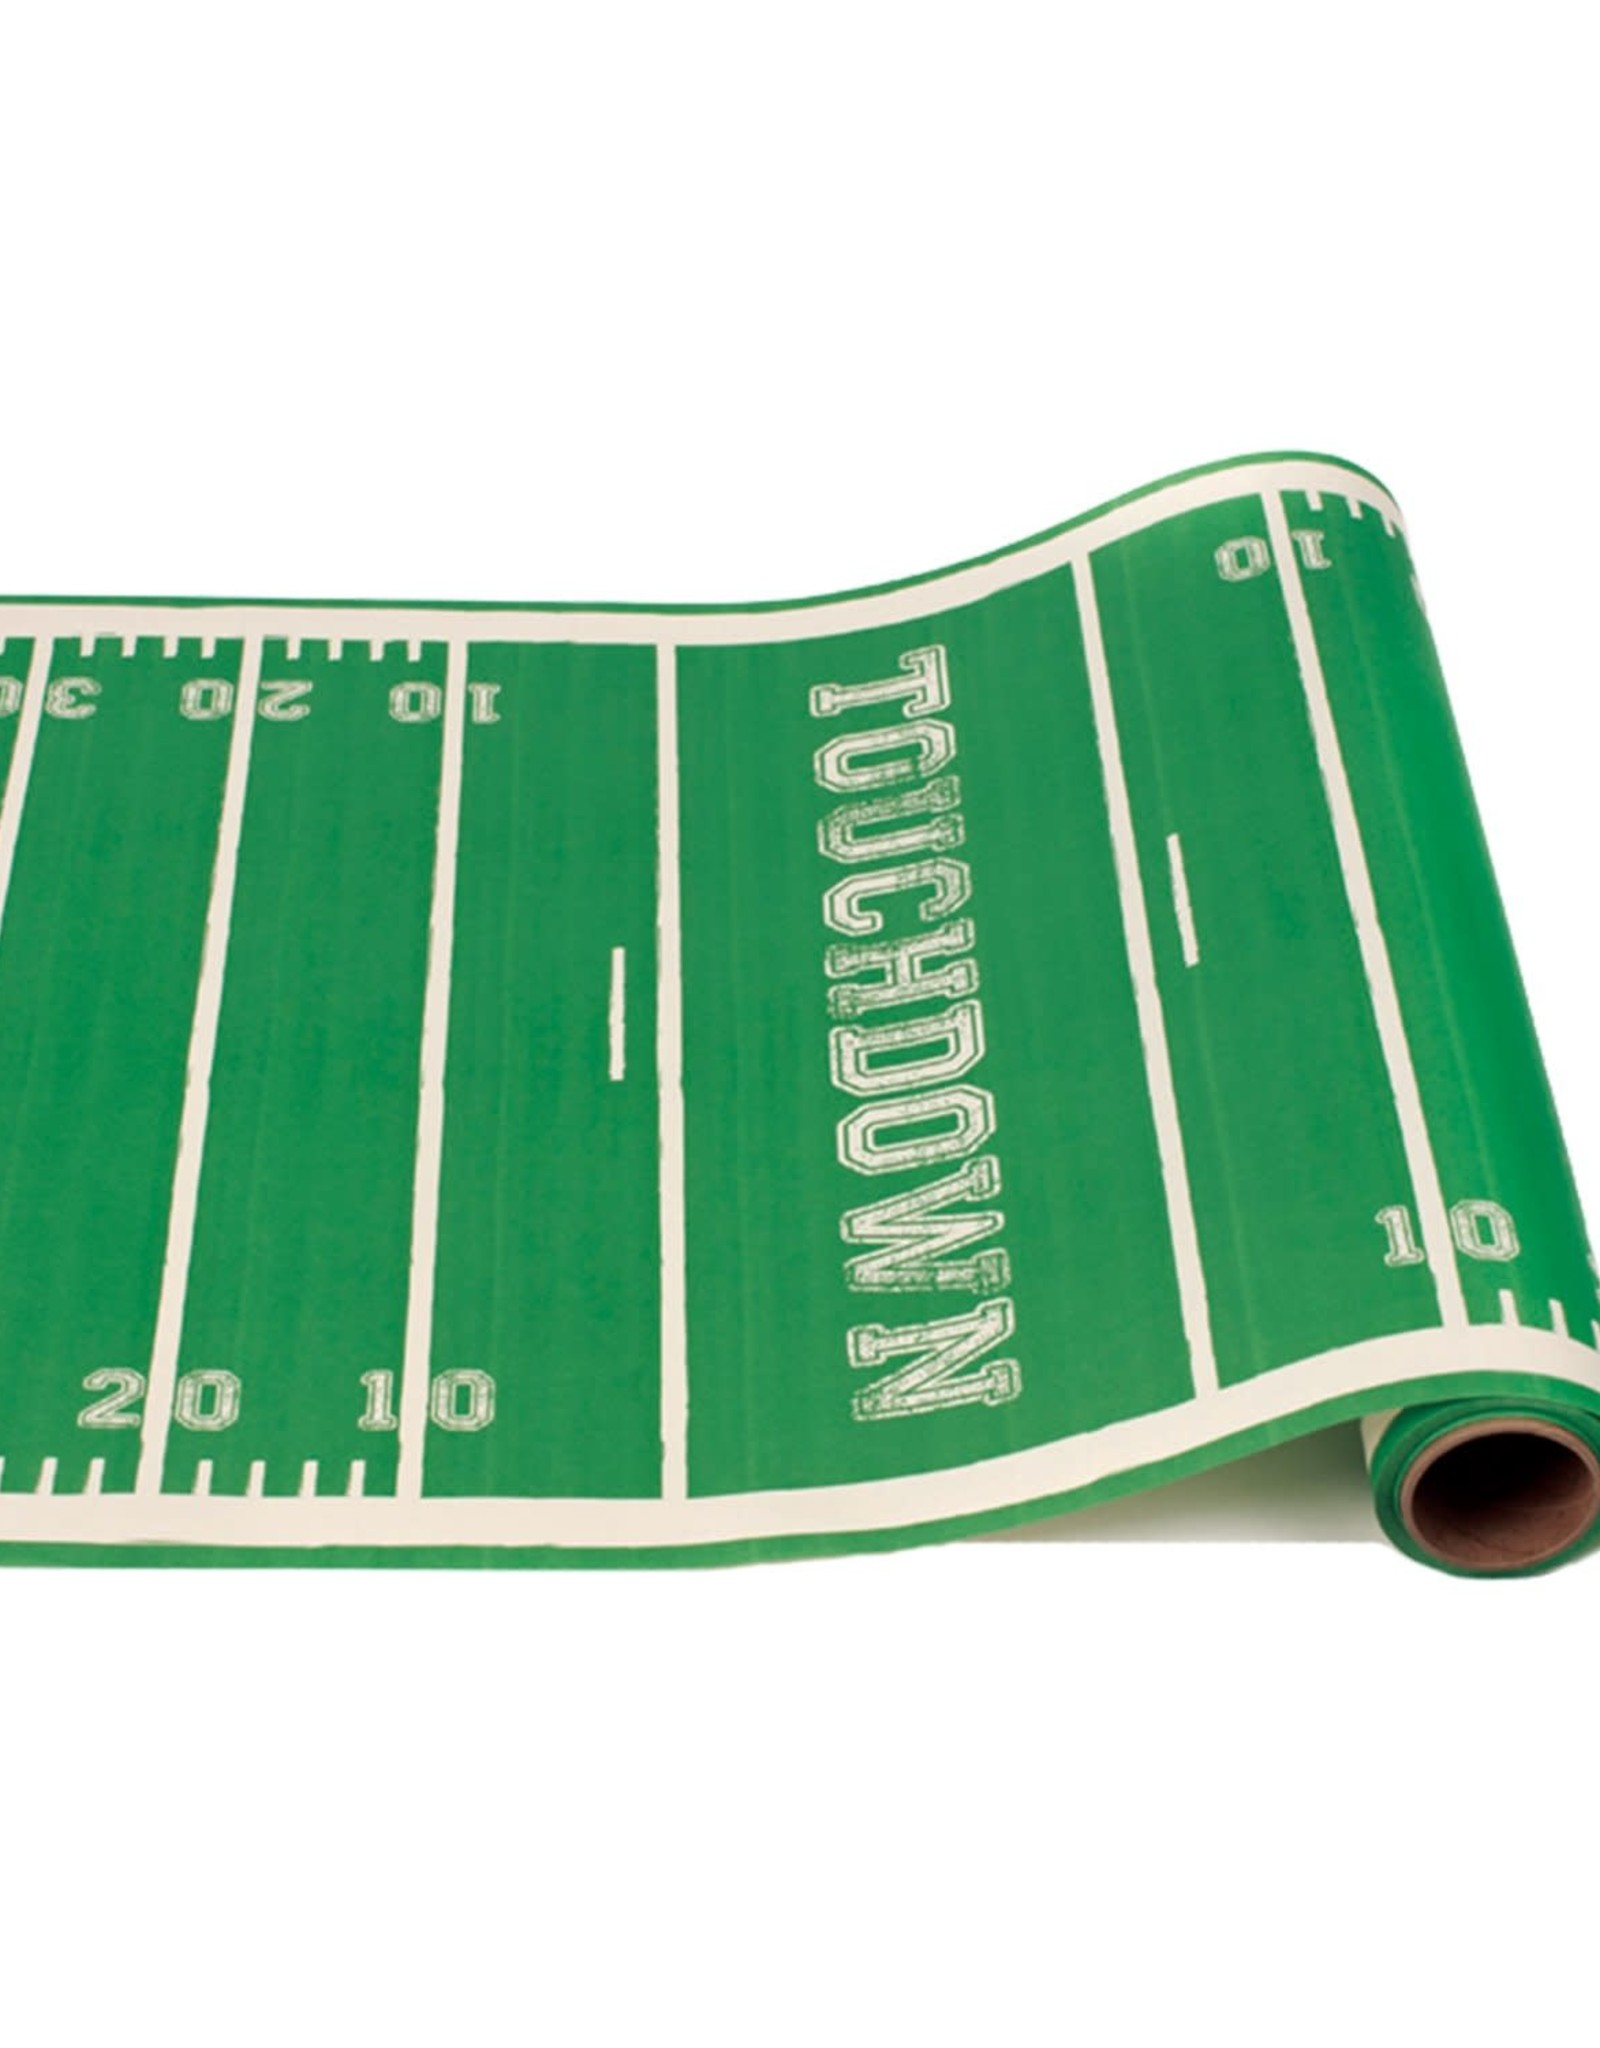 Home Touchdown Runner, 20-25""